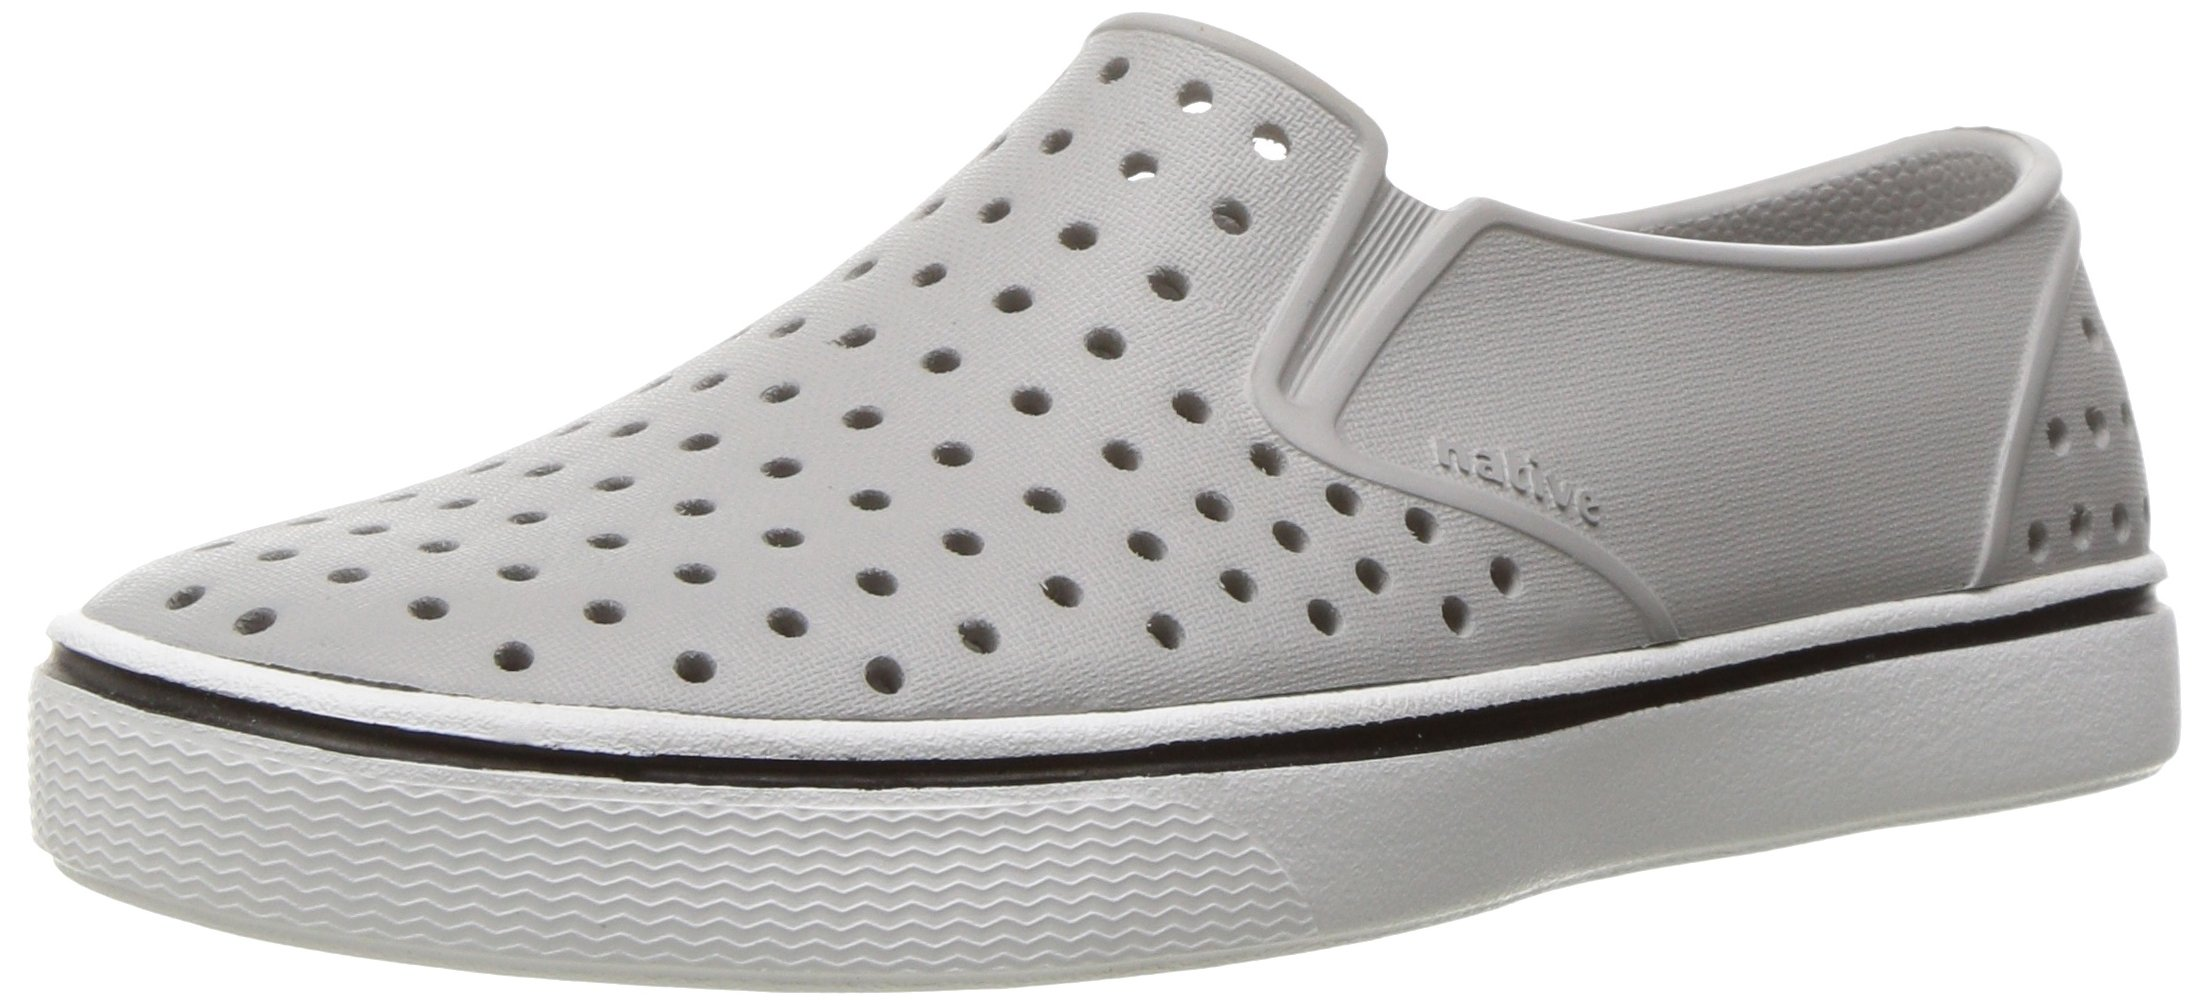 Native Kids Miles Junior Water Proof Shoes, Pigeon Grey/Shell White, 3 Medium US Little Kid